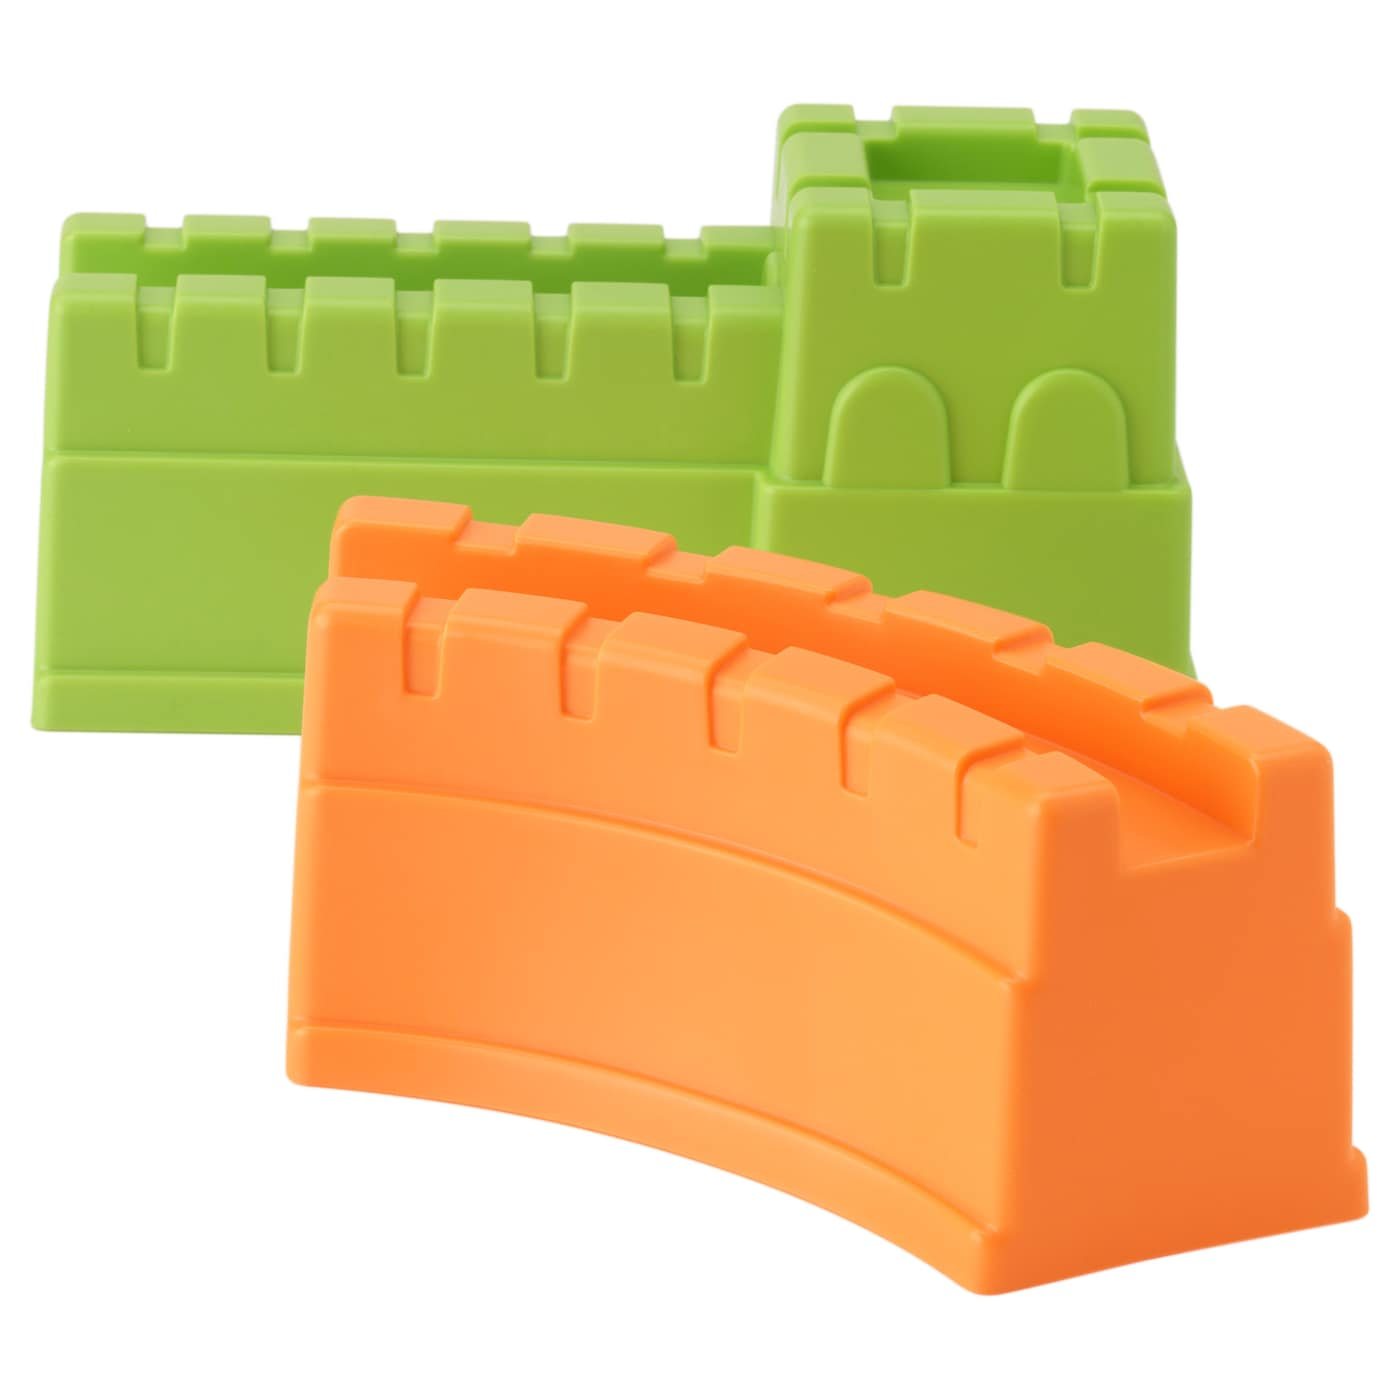 IKEA SANDIG sand mould, castle